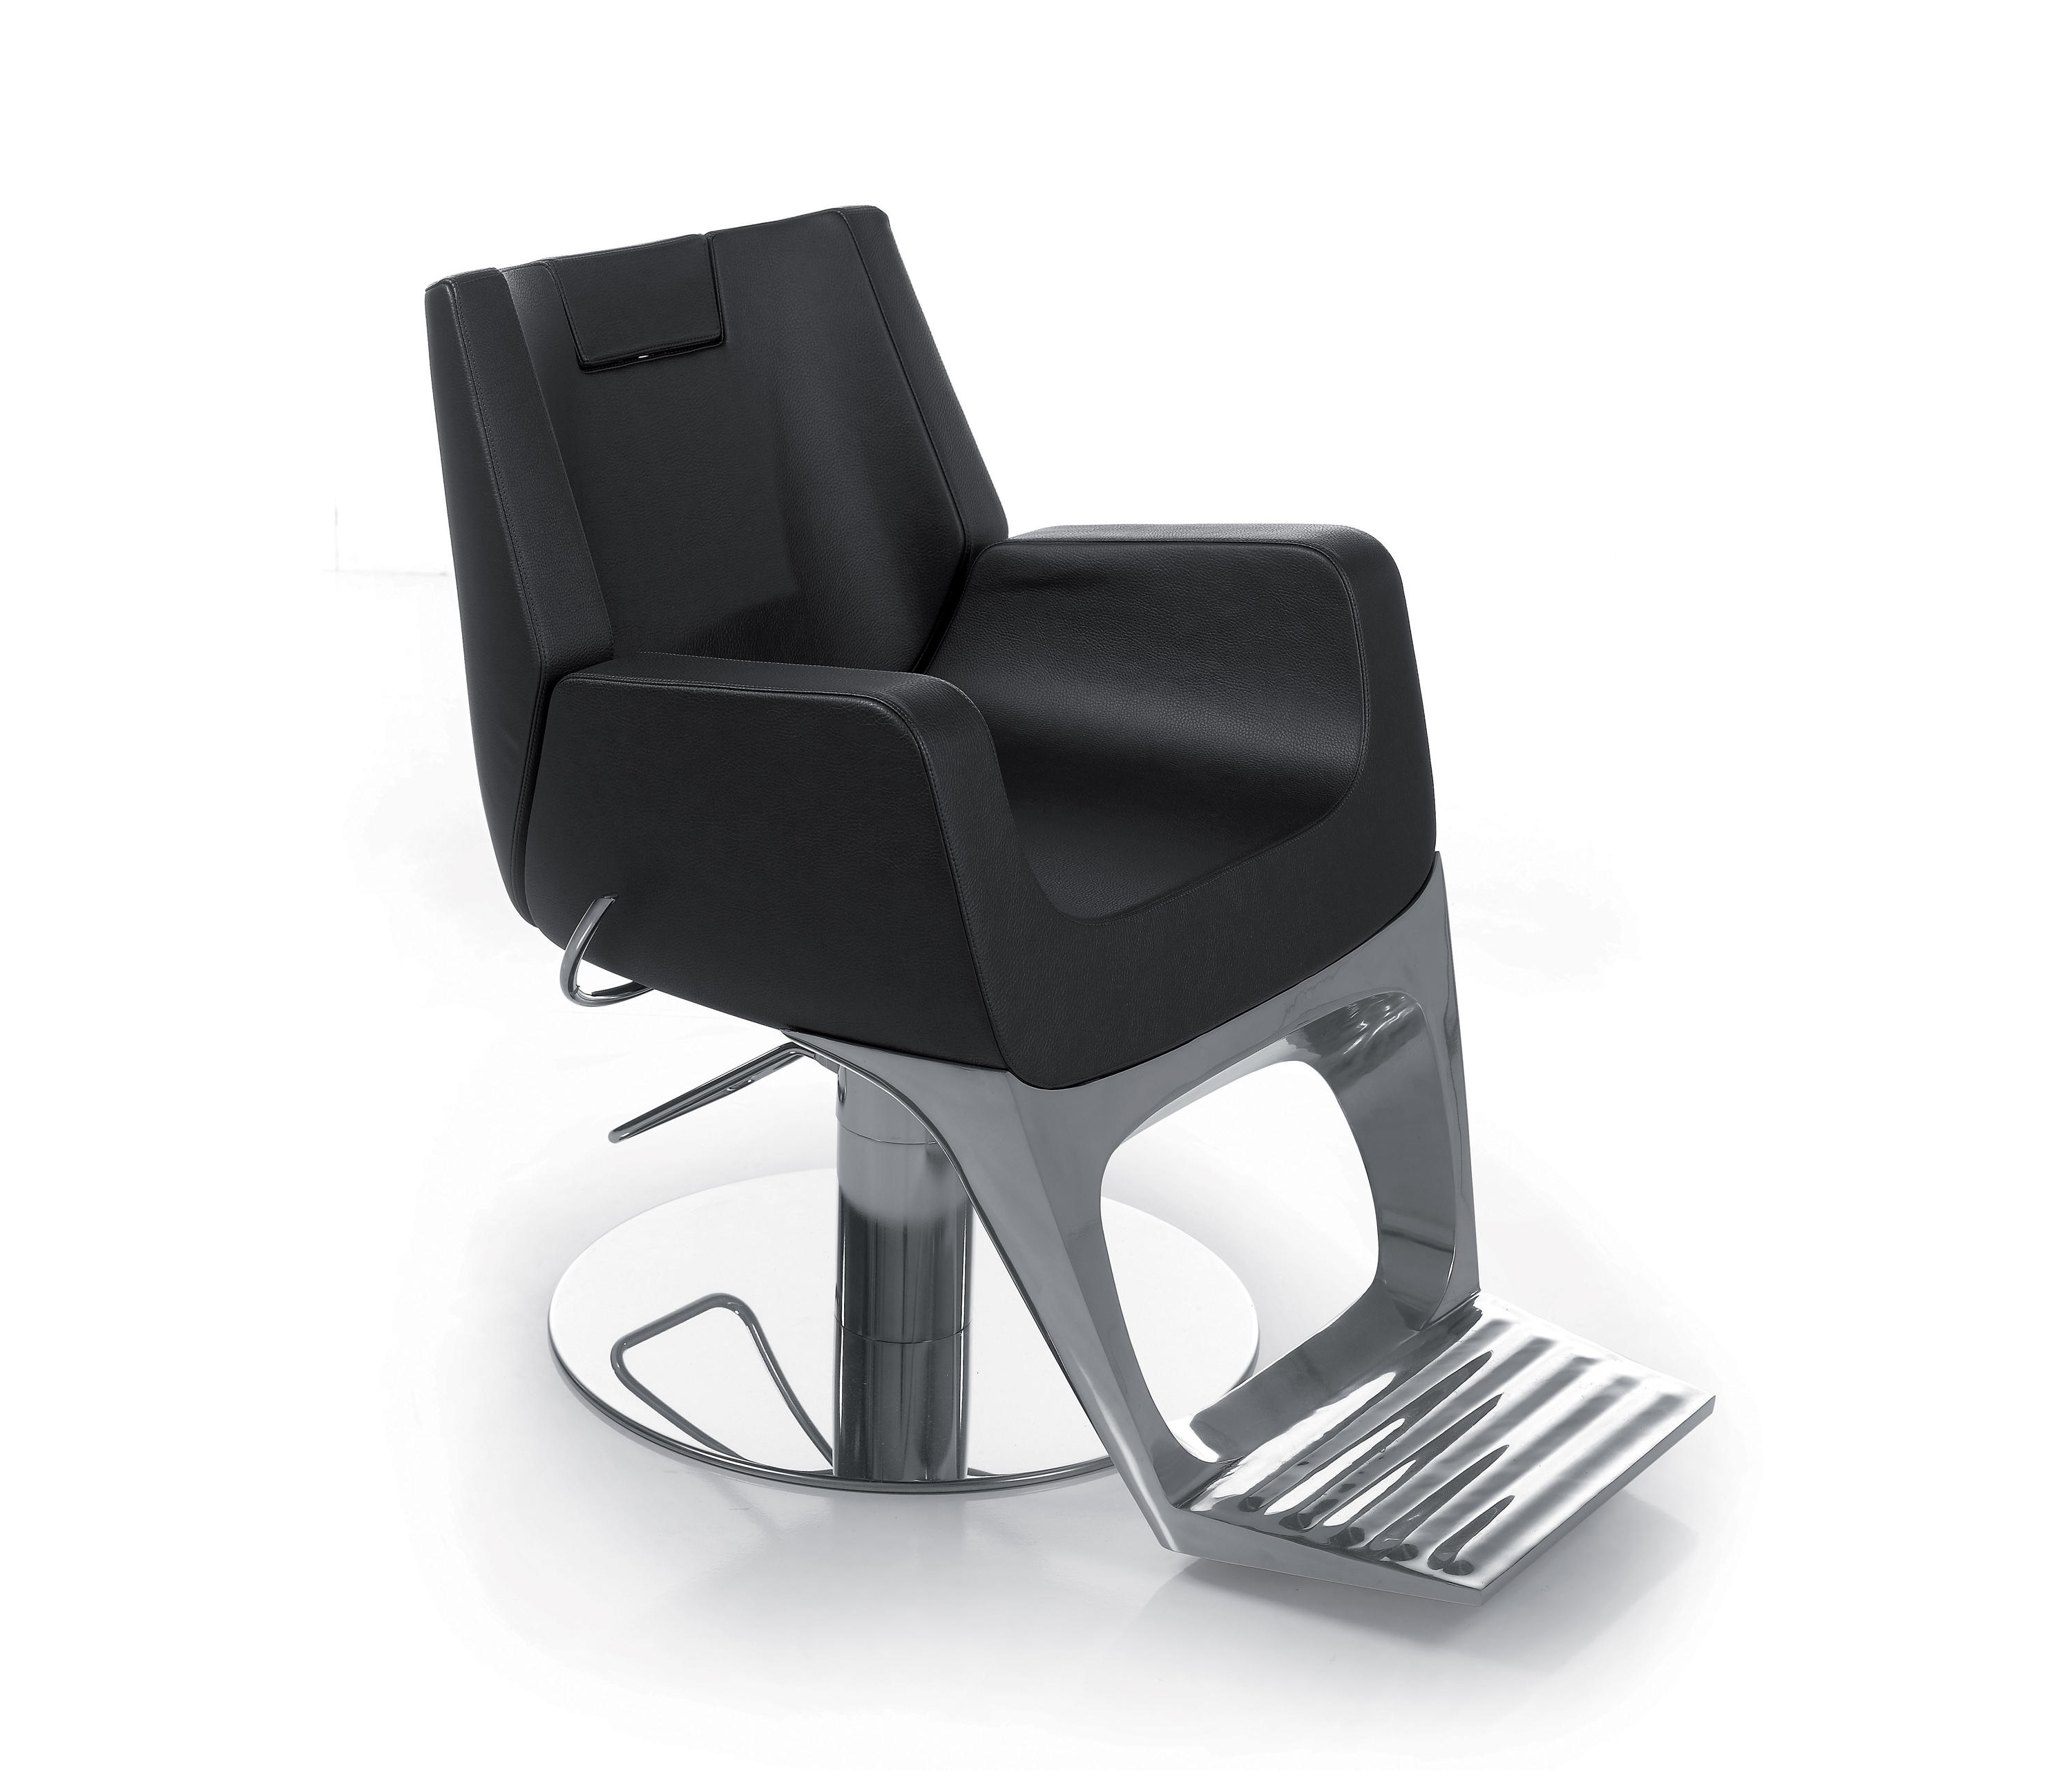 mr fantasy gamma state of the art barber chair by gamma u0026 bross barber